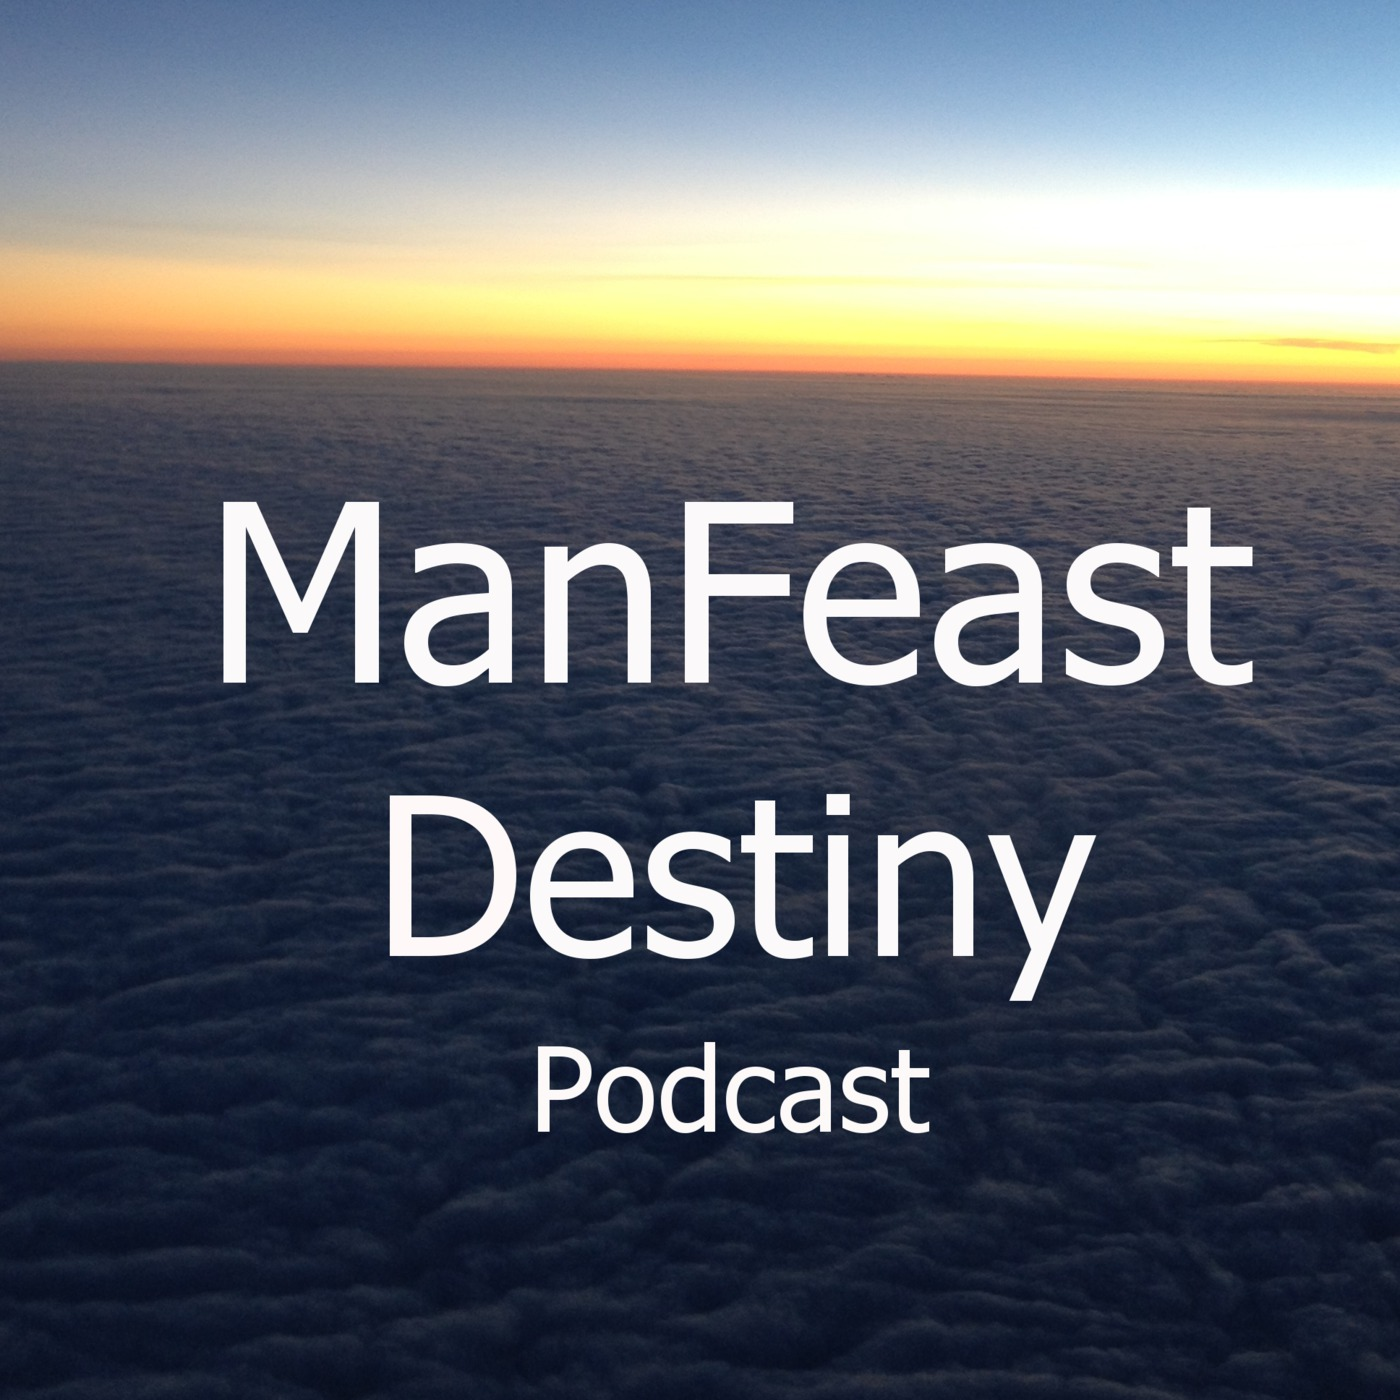 Man Feast Destiny Podcast